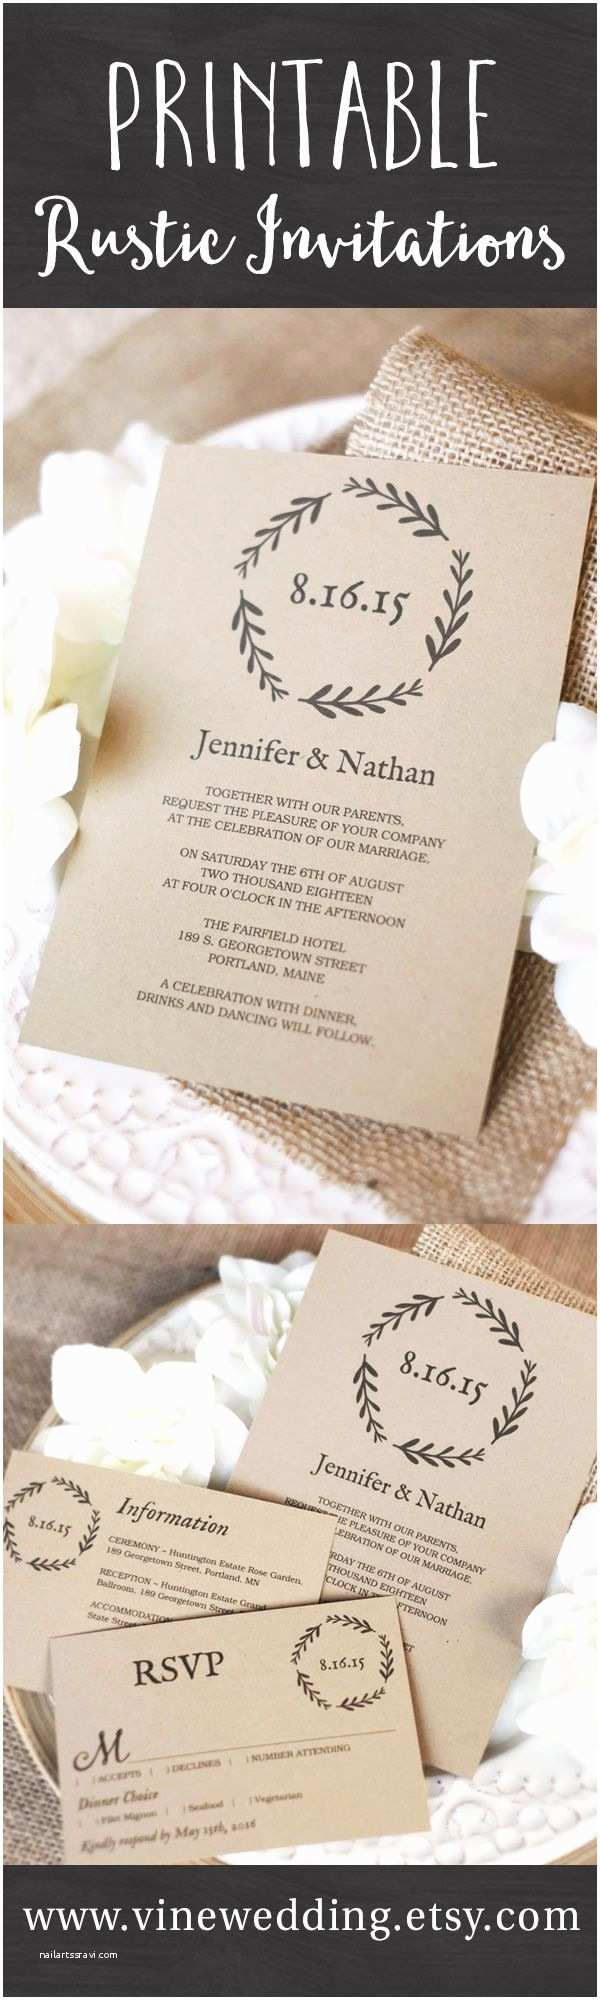 Beautiful Wedding Invitations Fabulous Wedding Invite Template Beautiful Purple